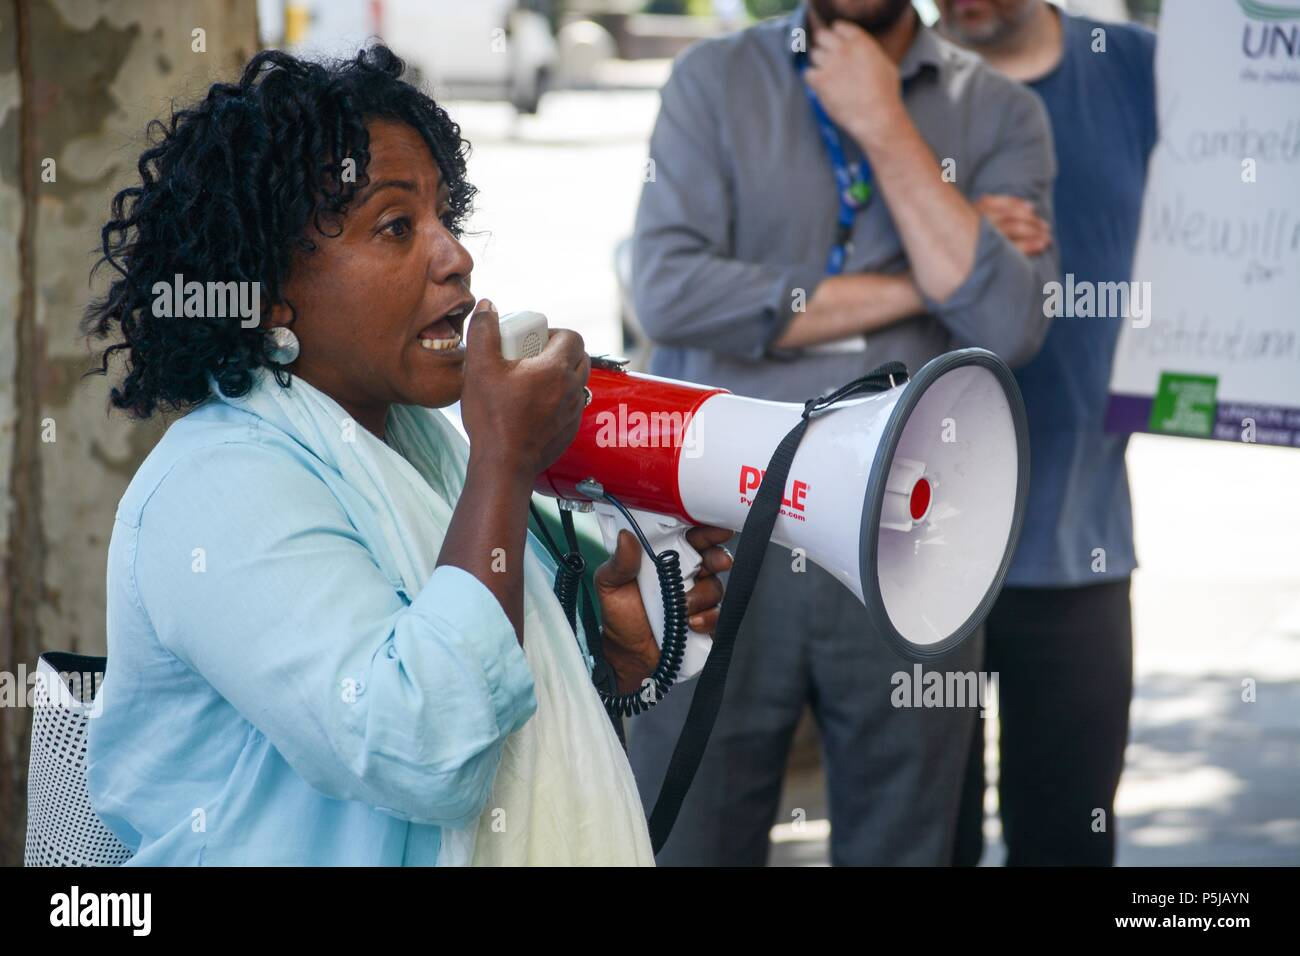 Brixton, London, UK. 27th Jun, 2018. Union member Hassina Malik addresses the assembled workers. ,Lambeth town hall Brixton London UK. Black ethnic minorities workers accuse Lambeth chiefs of not acting fairly in there treatment of BME workers. A lunchtime action was called for by the Unison union, as management haven't responded to complaints or acted on race relations instructions, which is  50 years old this year,UNISON is calling on the current and future governments to renew a commitment to race equality at work and in the wider society. Credit: Philip Robins/Alamy Live News Stock Photo